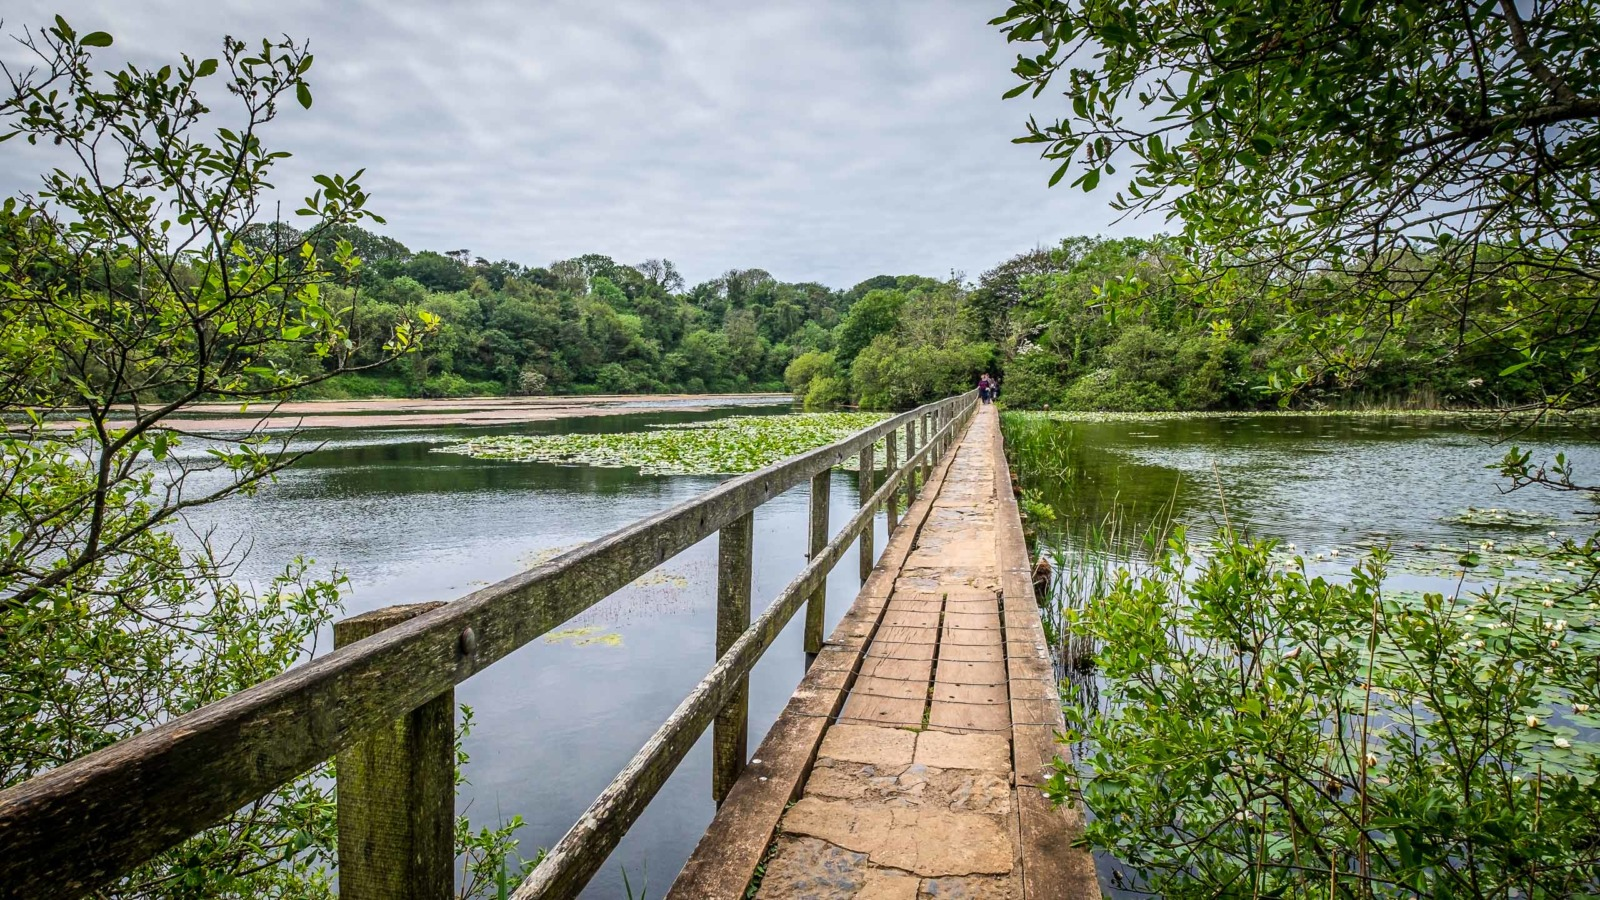 Bosherston lily pools in south Wales